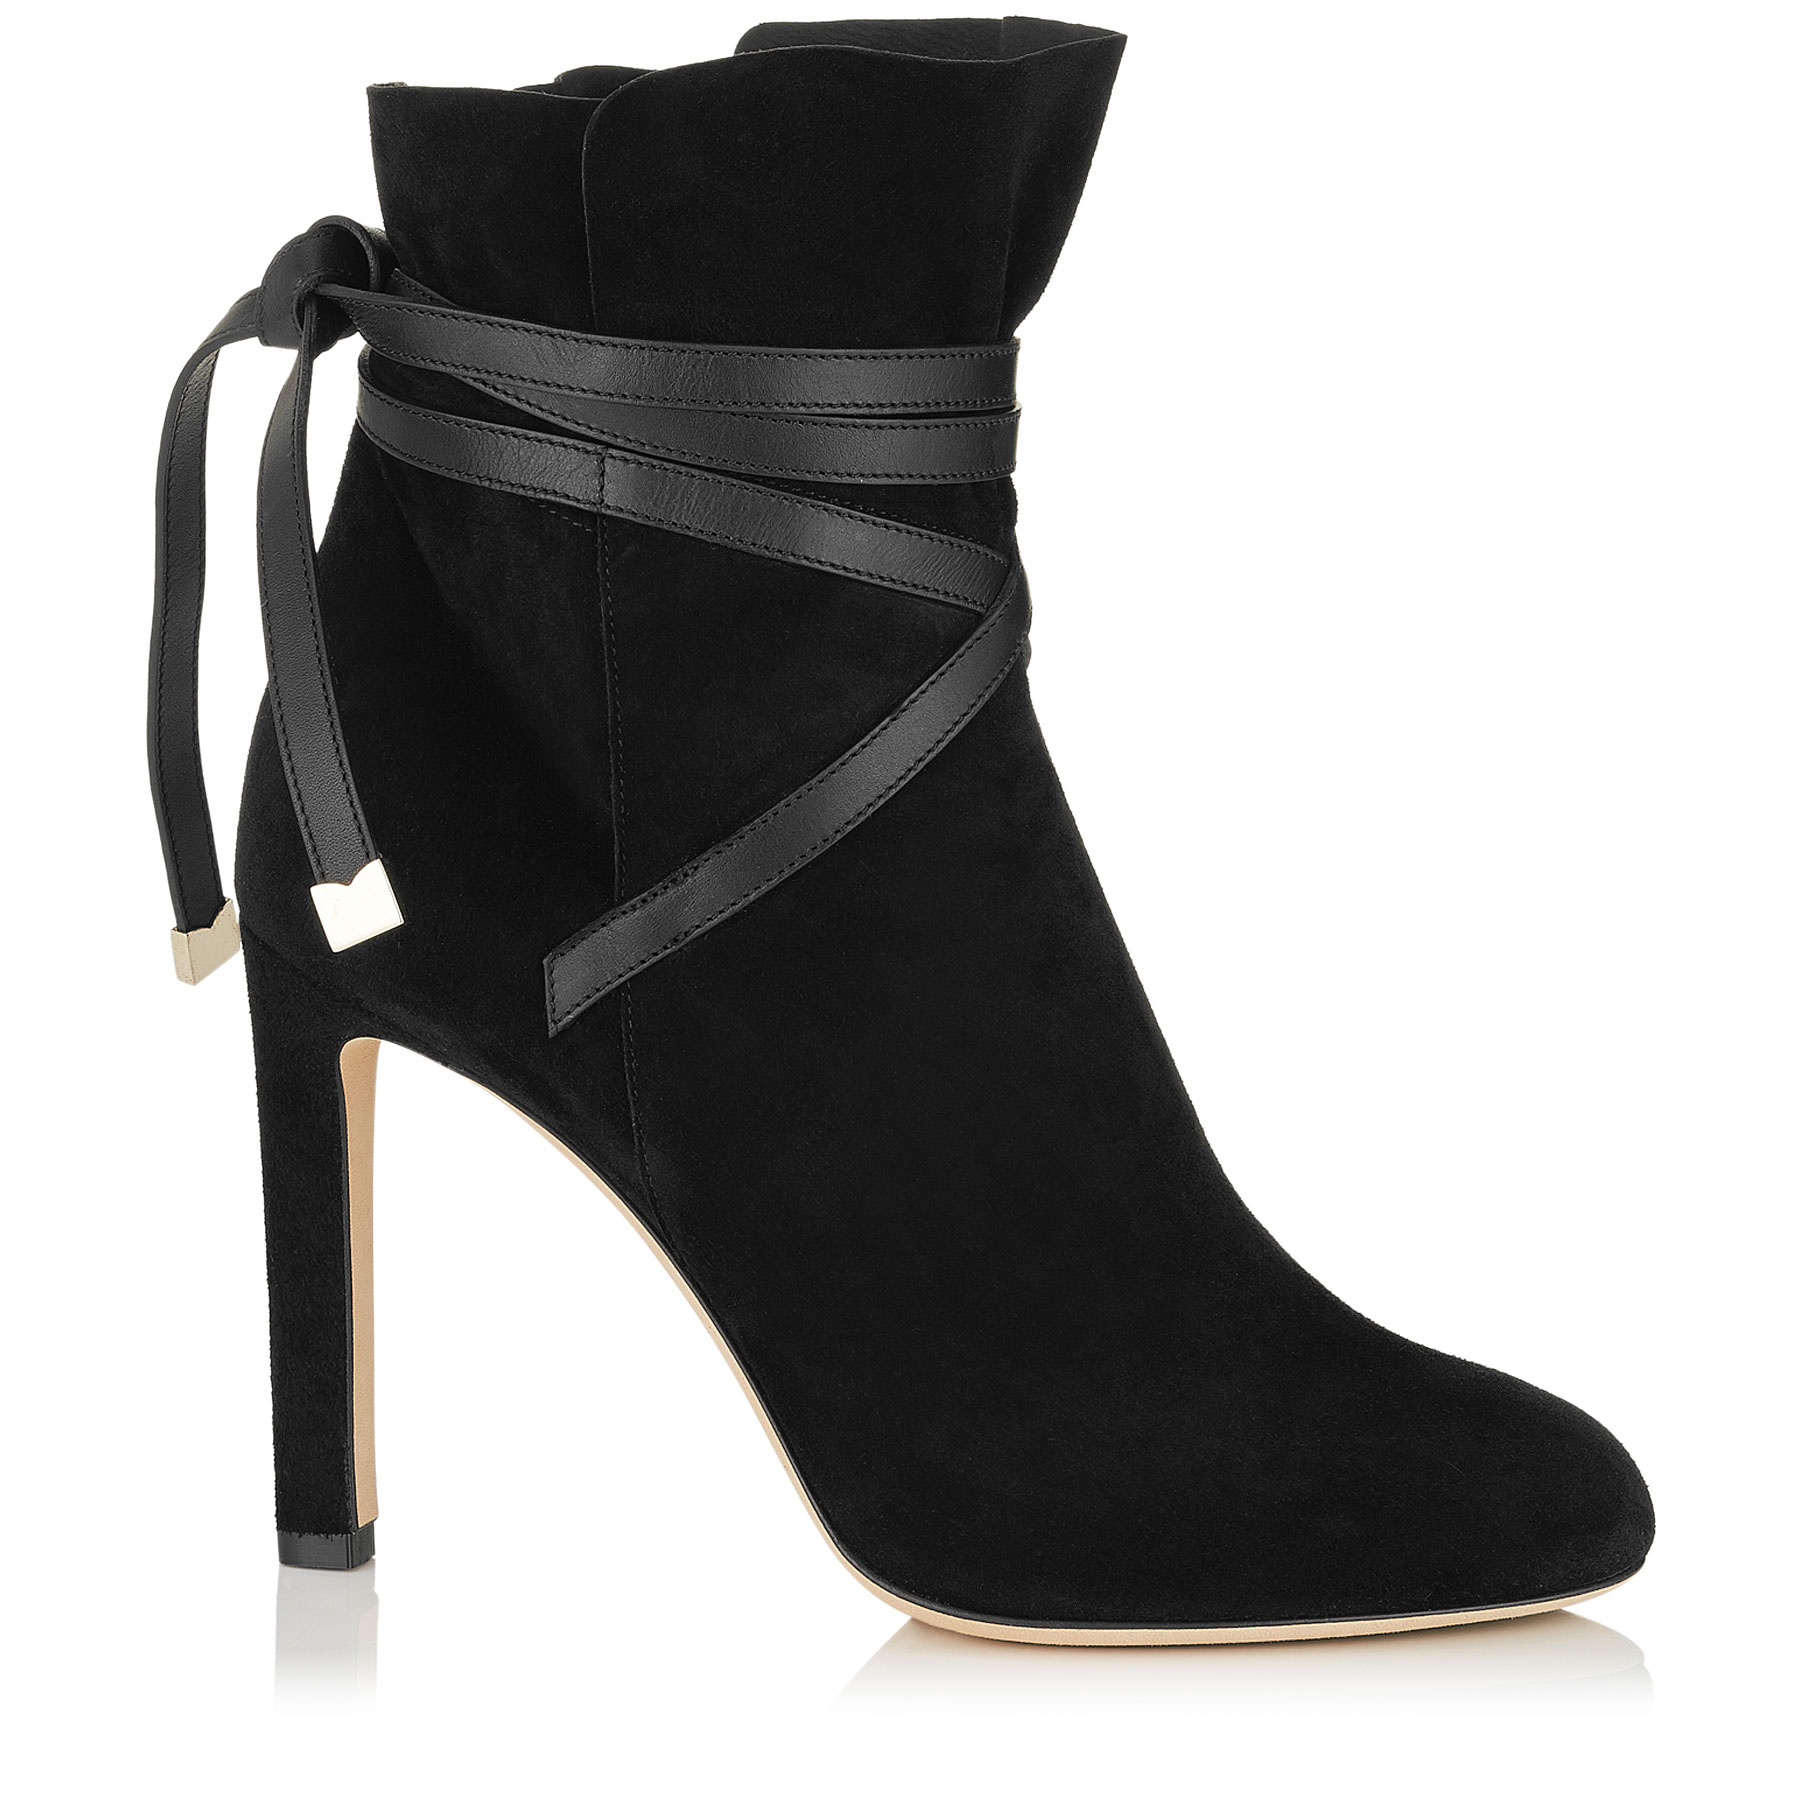 DALAL 100 Black Cashmere Suede Ankle Booties with Leather Strap Detail